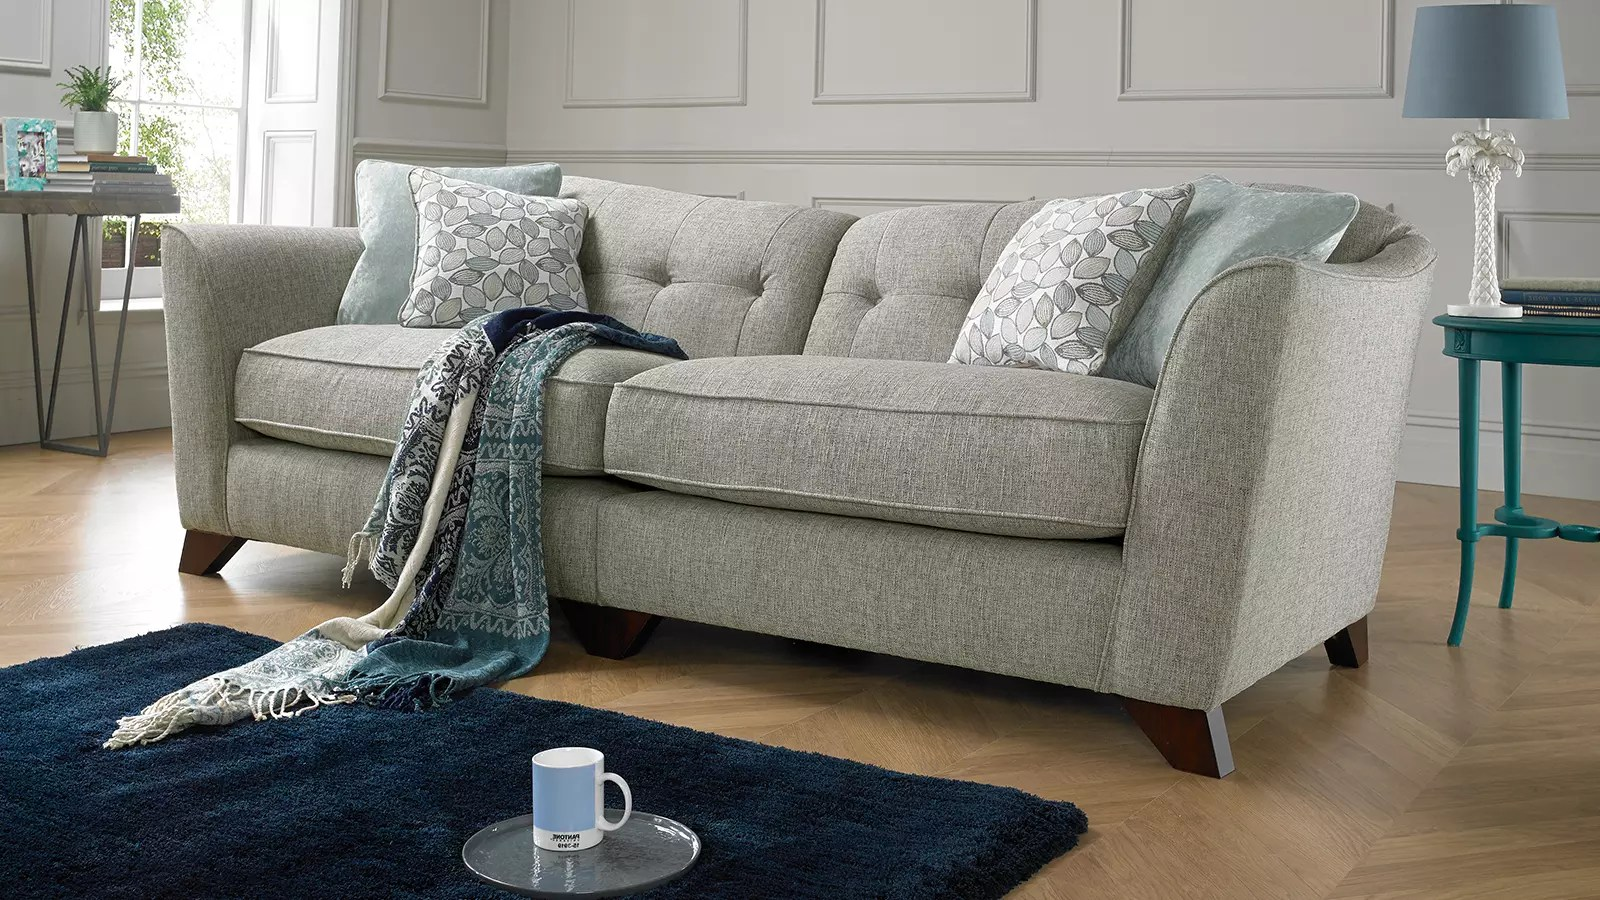 Made To Measure Sofas Manchester Sofas For Express Delivery In As Little As 14 Days Sofology